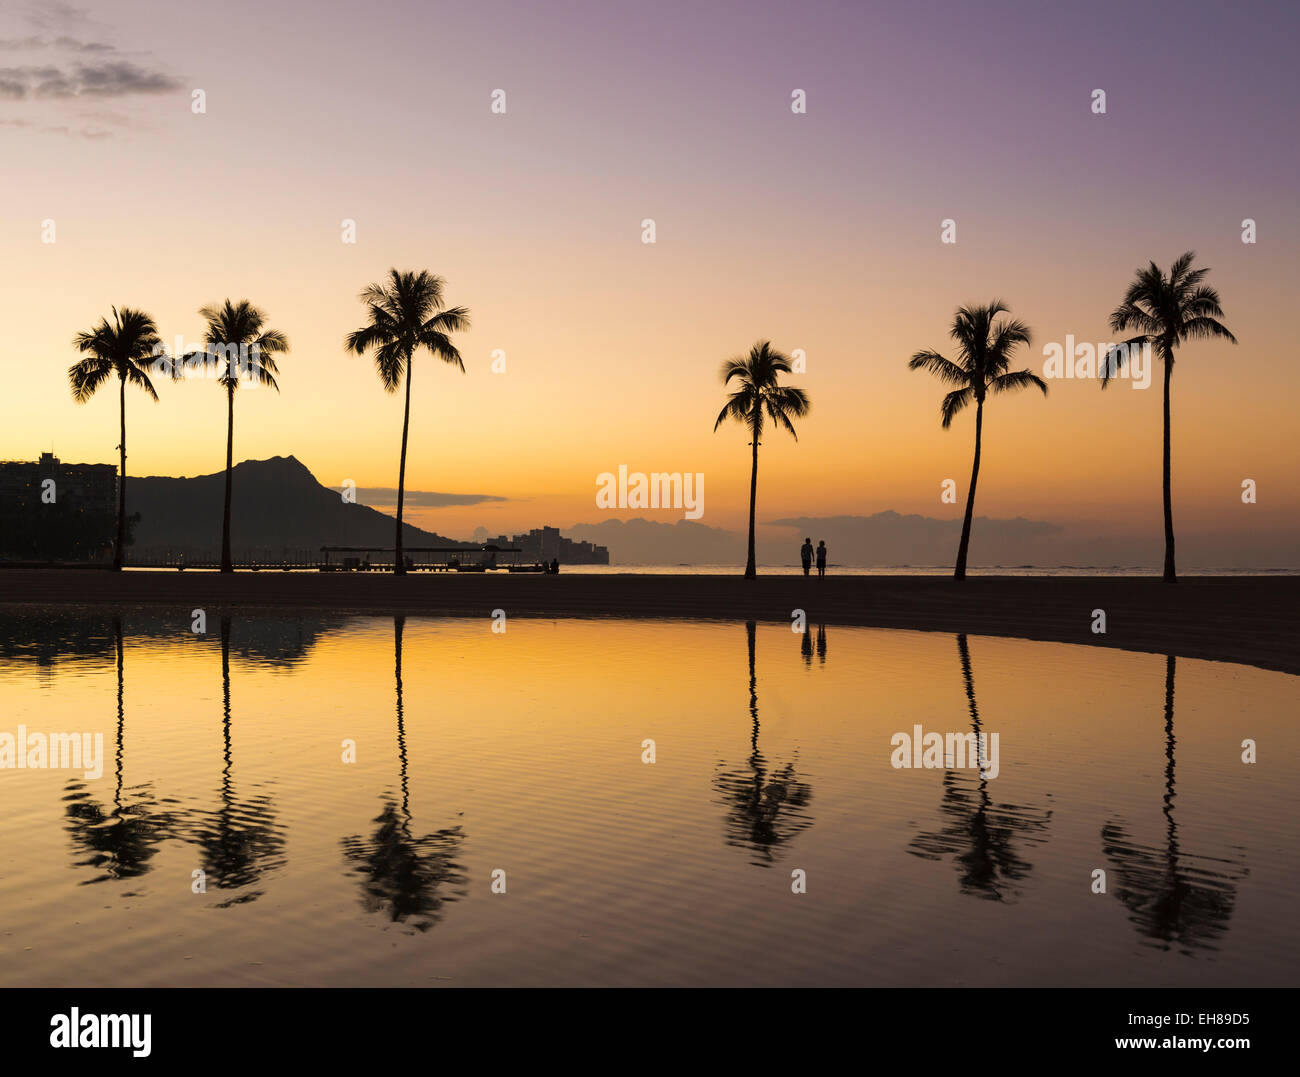 La plage de Waikiki, Hawaii Photo Stock